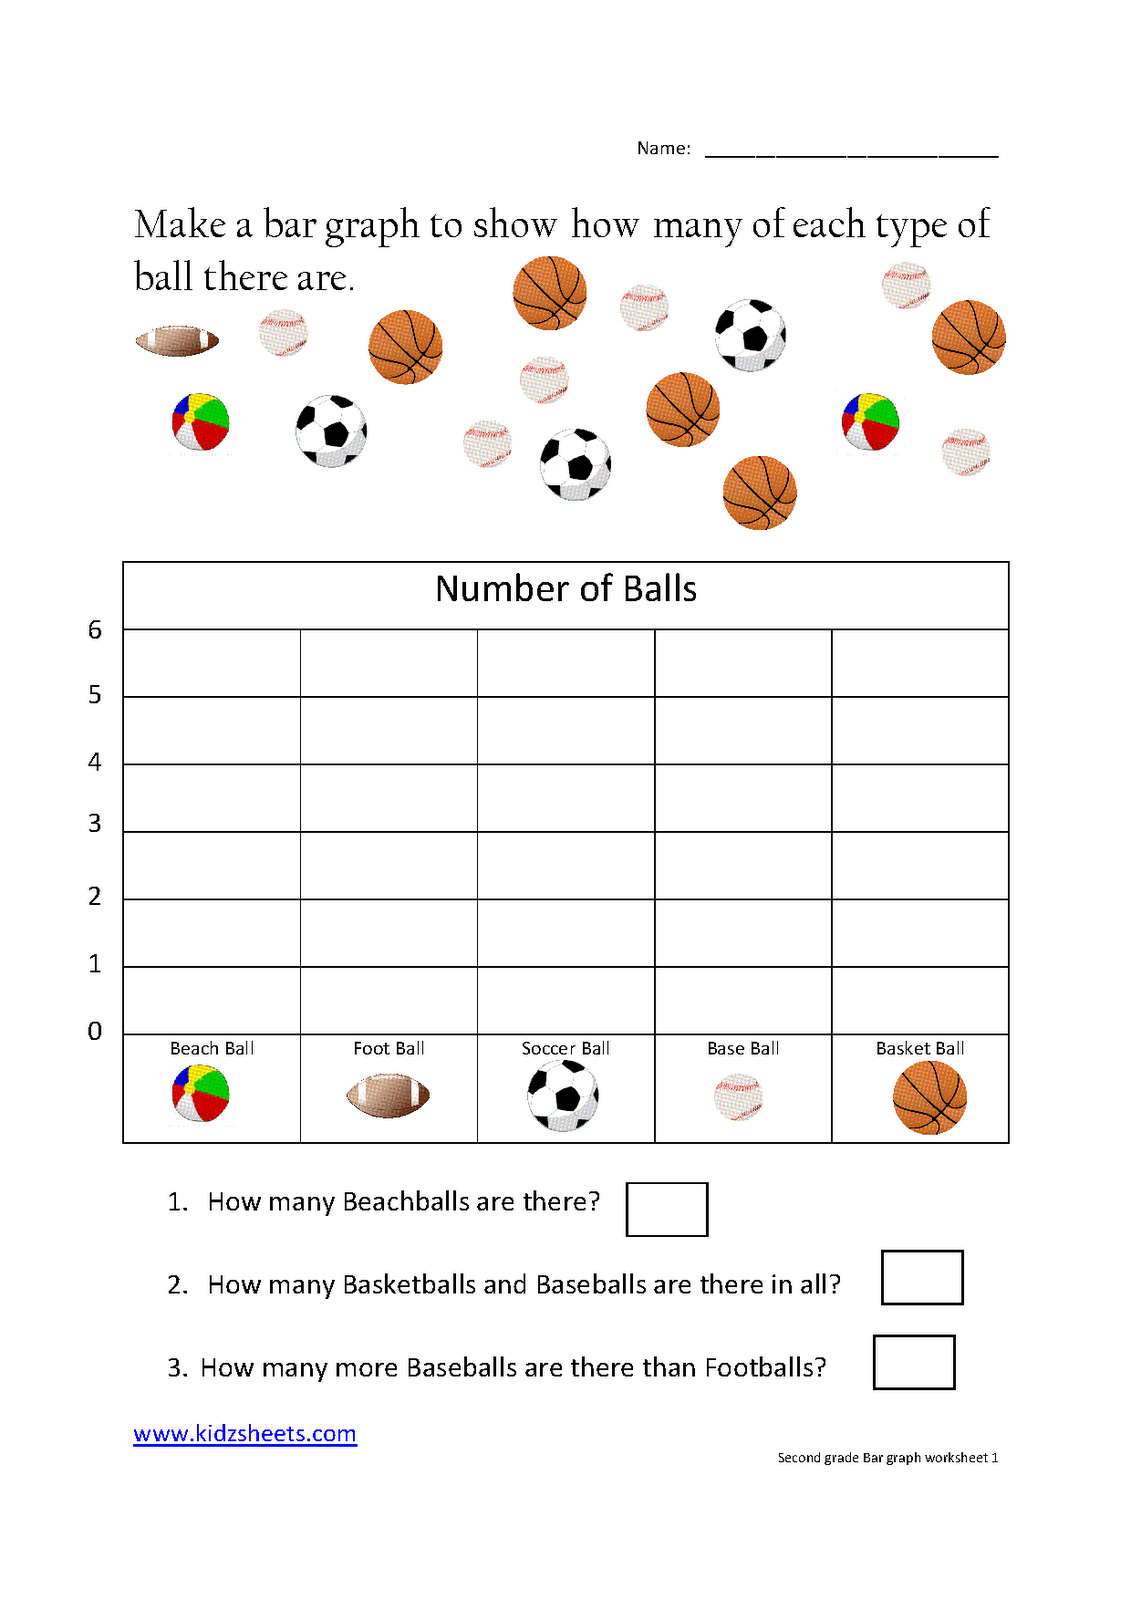 Kidz Worksheets: Second Grade Bar Graph Worksheet1 | School | 2Nd - Free Printable Bar Graph Worksheets For 2Nd Grade